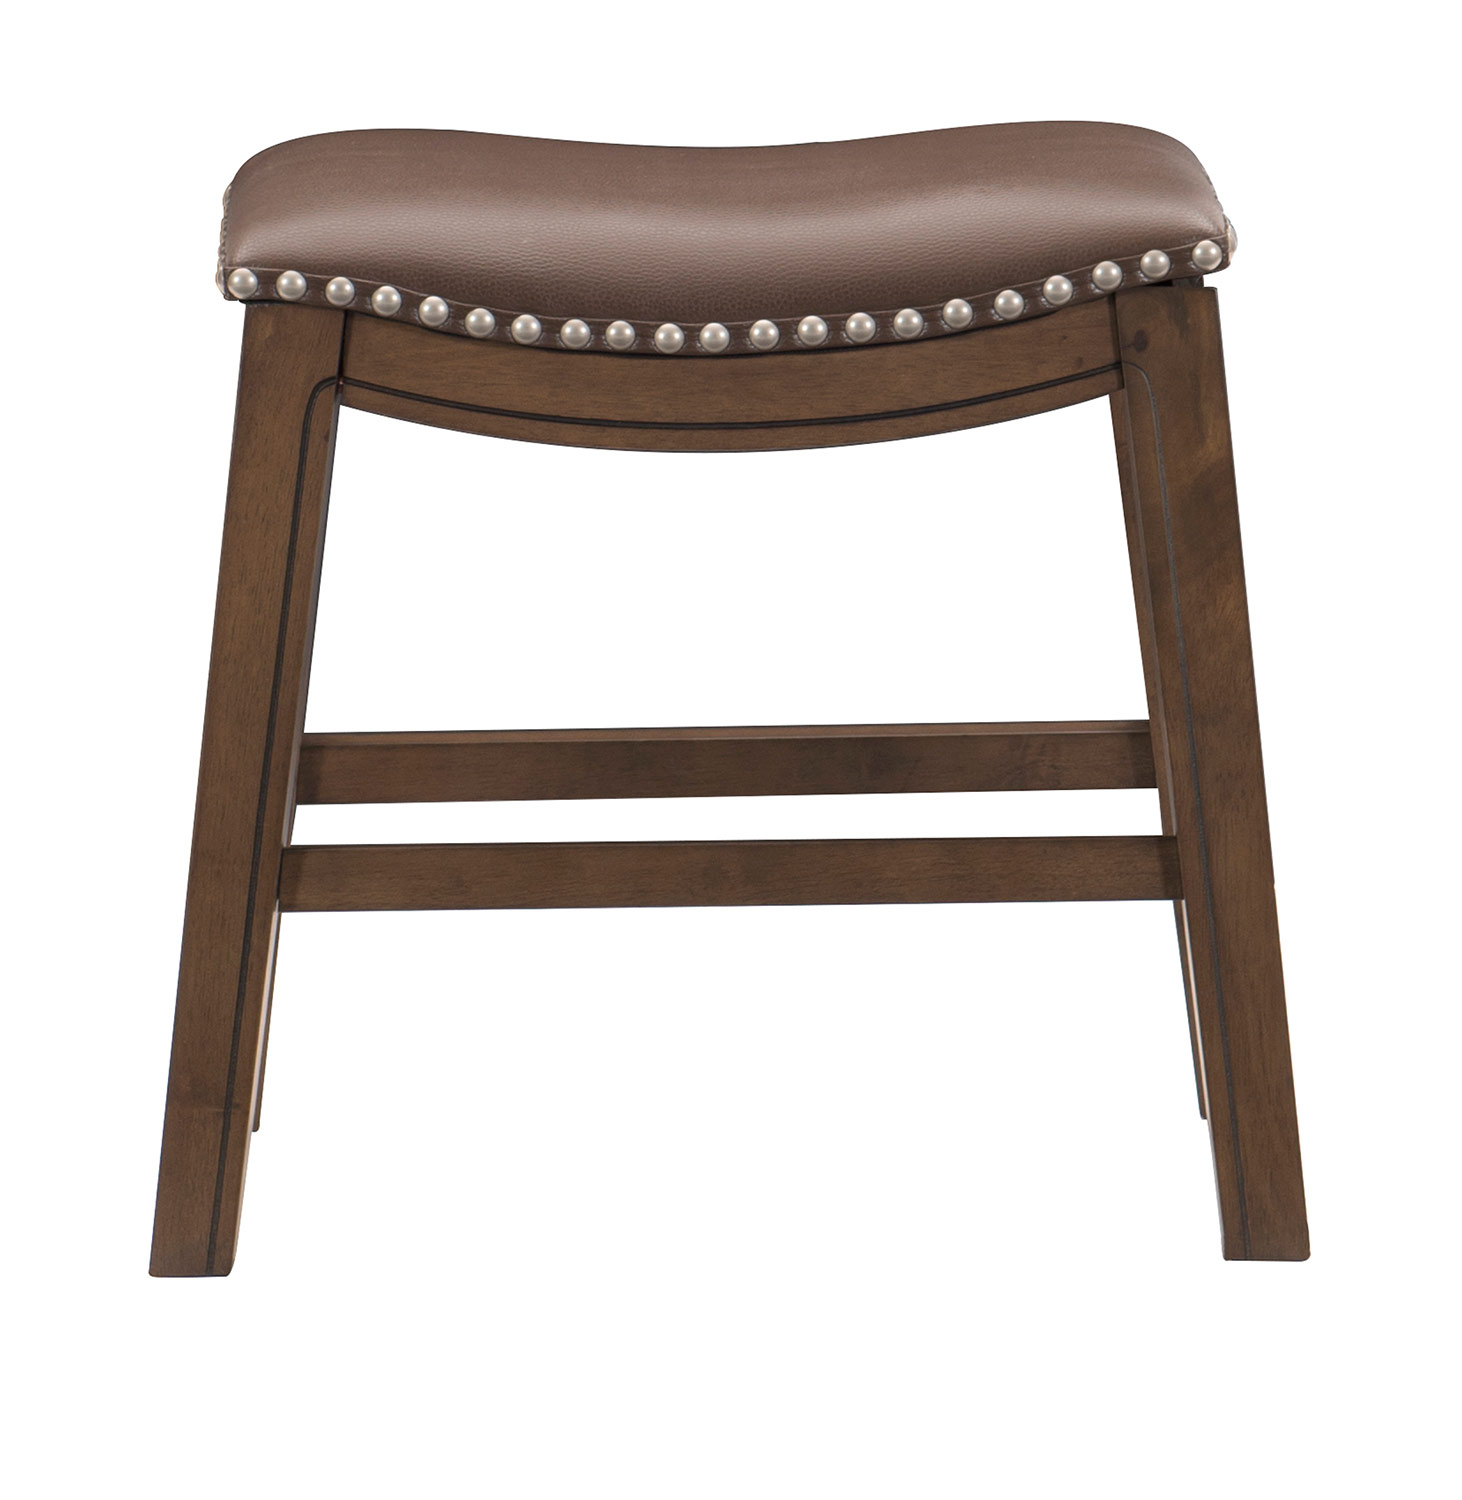 Homelegance 18 SH Stool - Brown